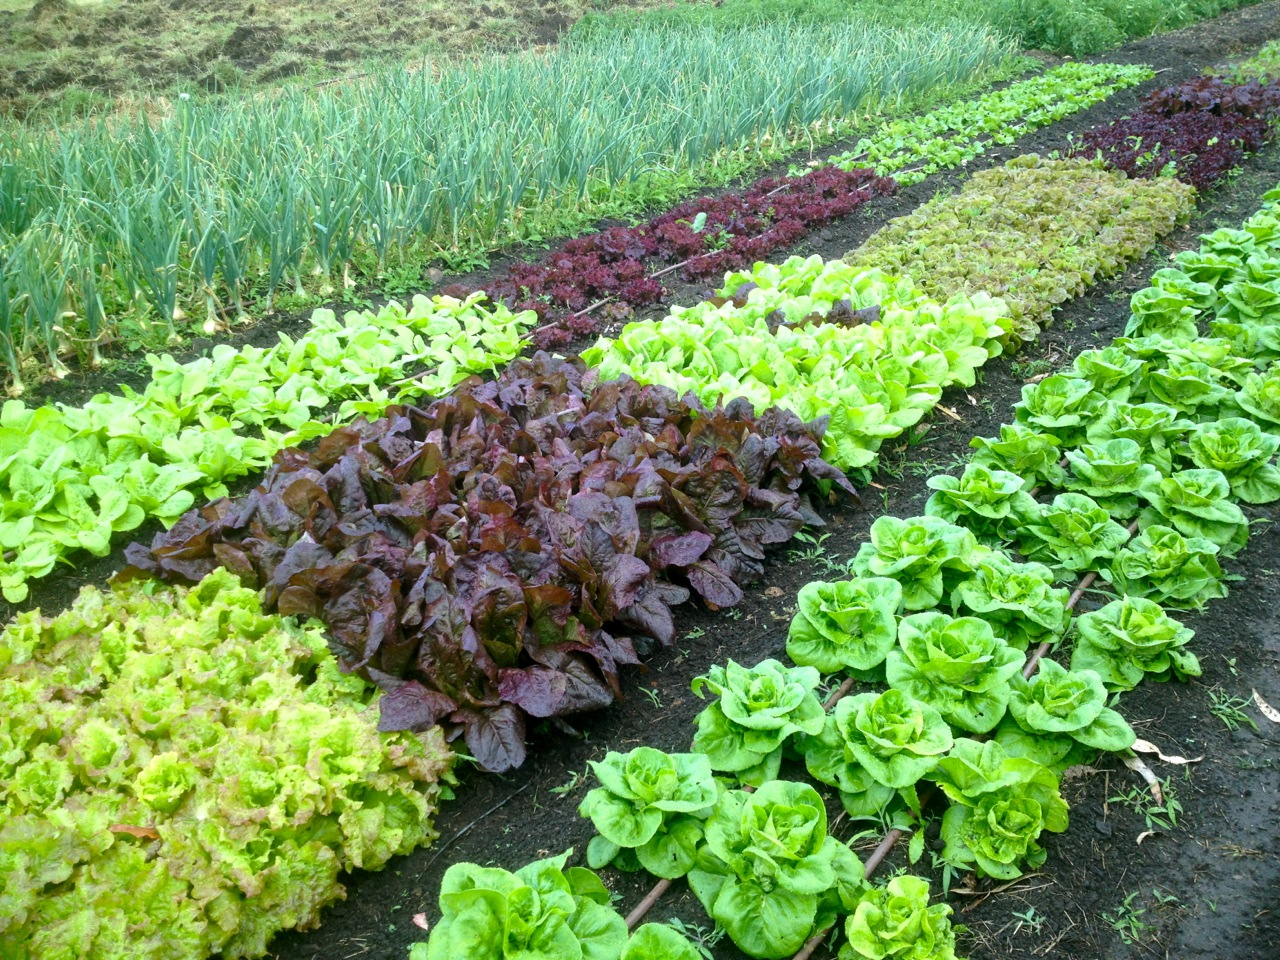 Why to balance your soil: to grow awesome veggies like these, of course!